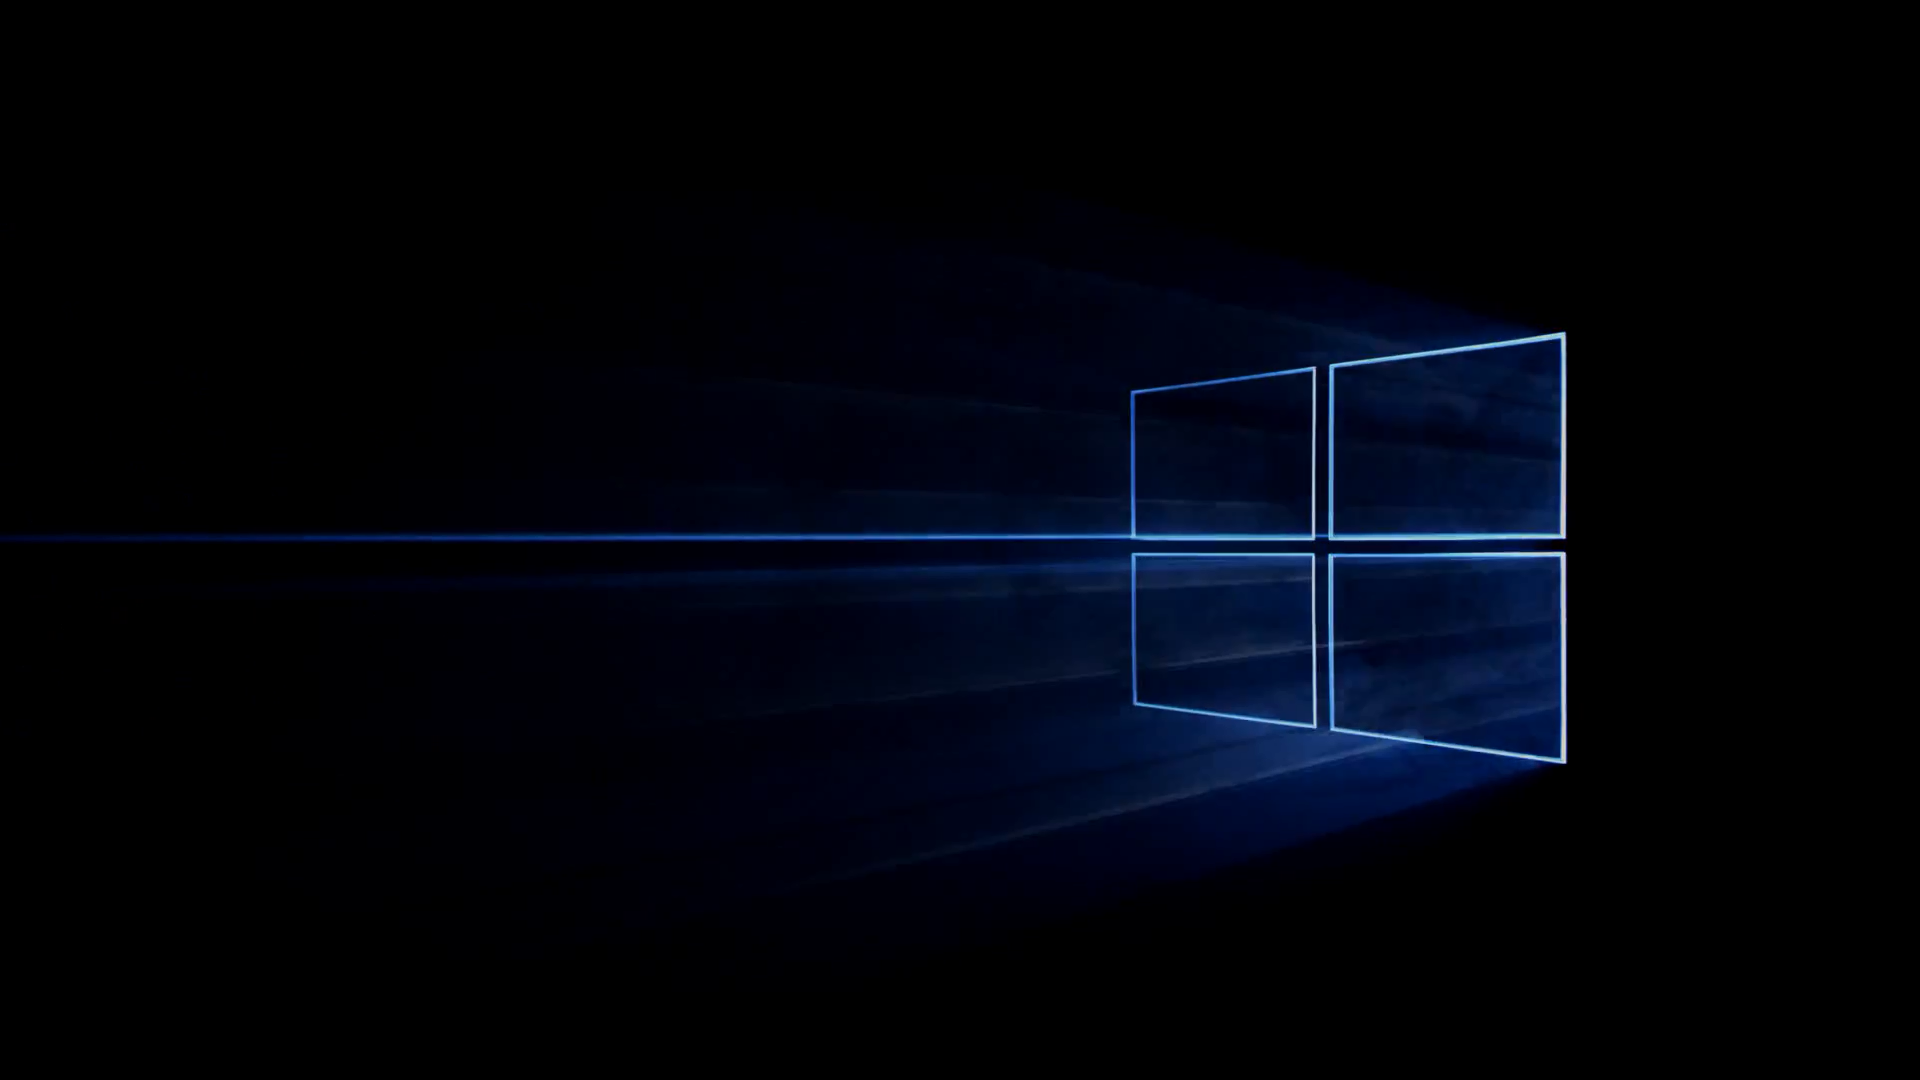 Windows 10 backgrounds pictures images - Fondos de escritorio hd para windows ...